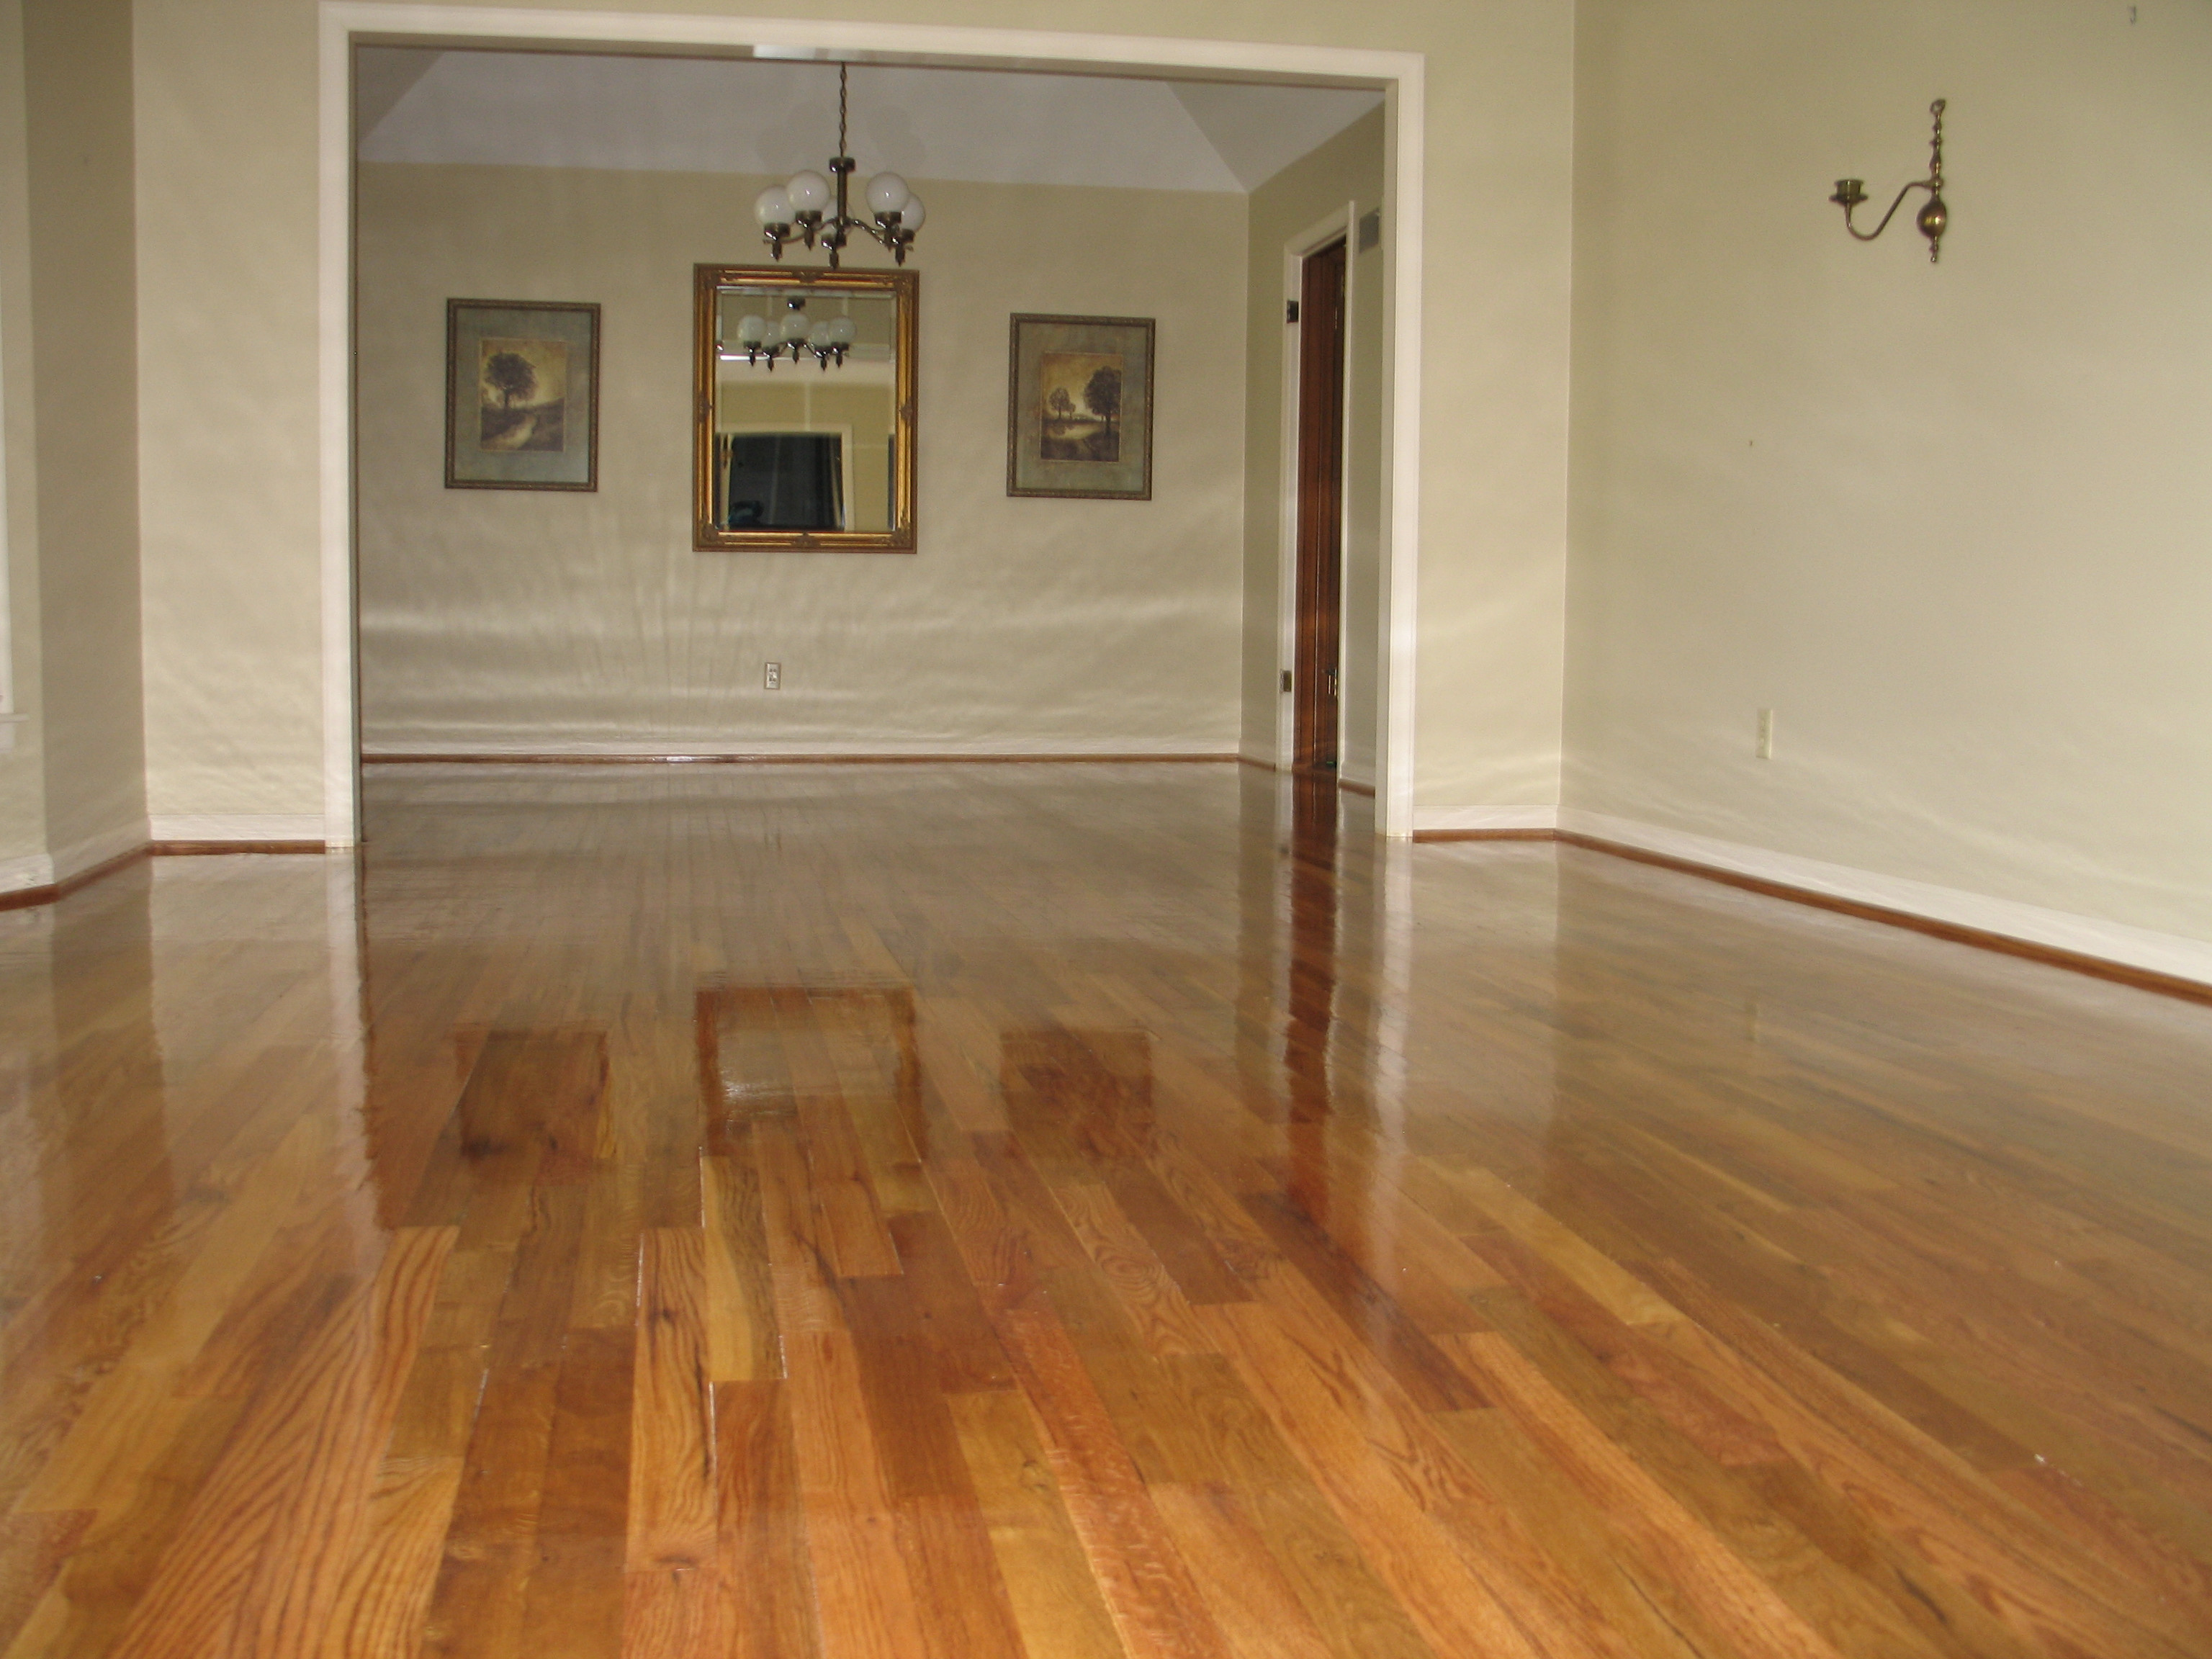 Cost Of Refinishing Hardwood Floors Canada Of How Much Does It Cost to Refinish A Hardwood Floor Yourself Wikizie Co with Great Modern How Much Does It Cost to Refinish Hardwood Floors